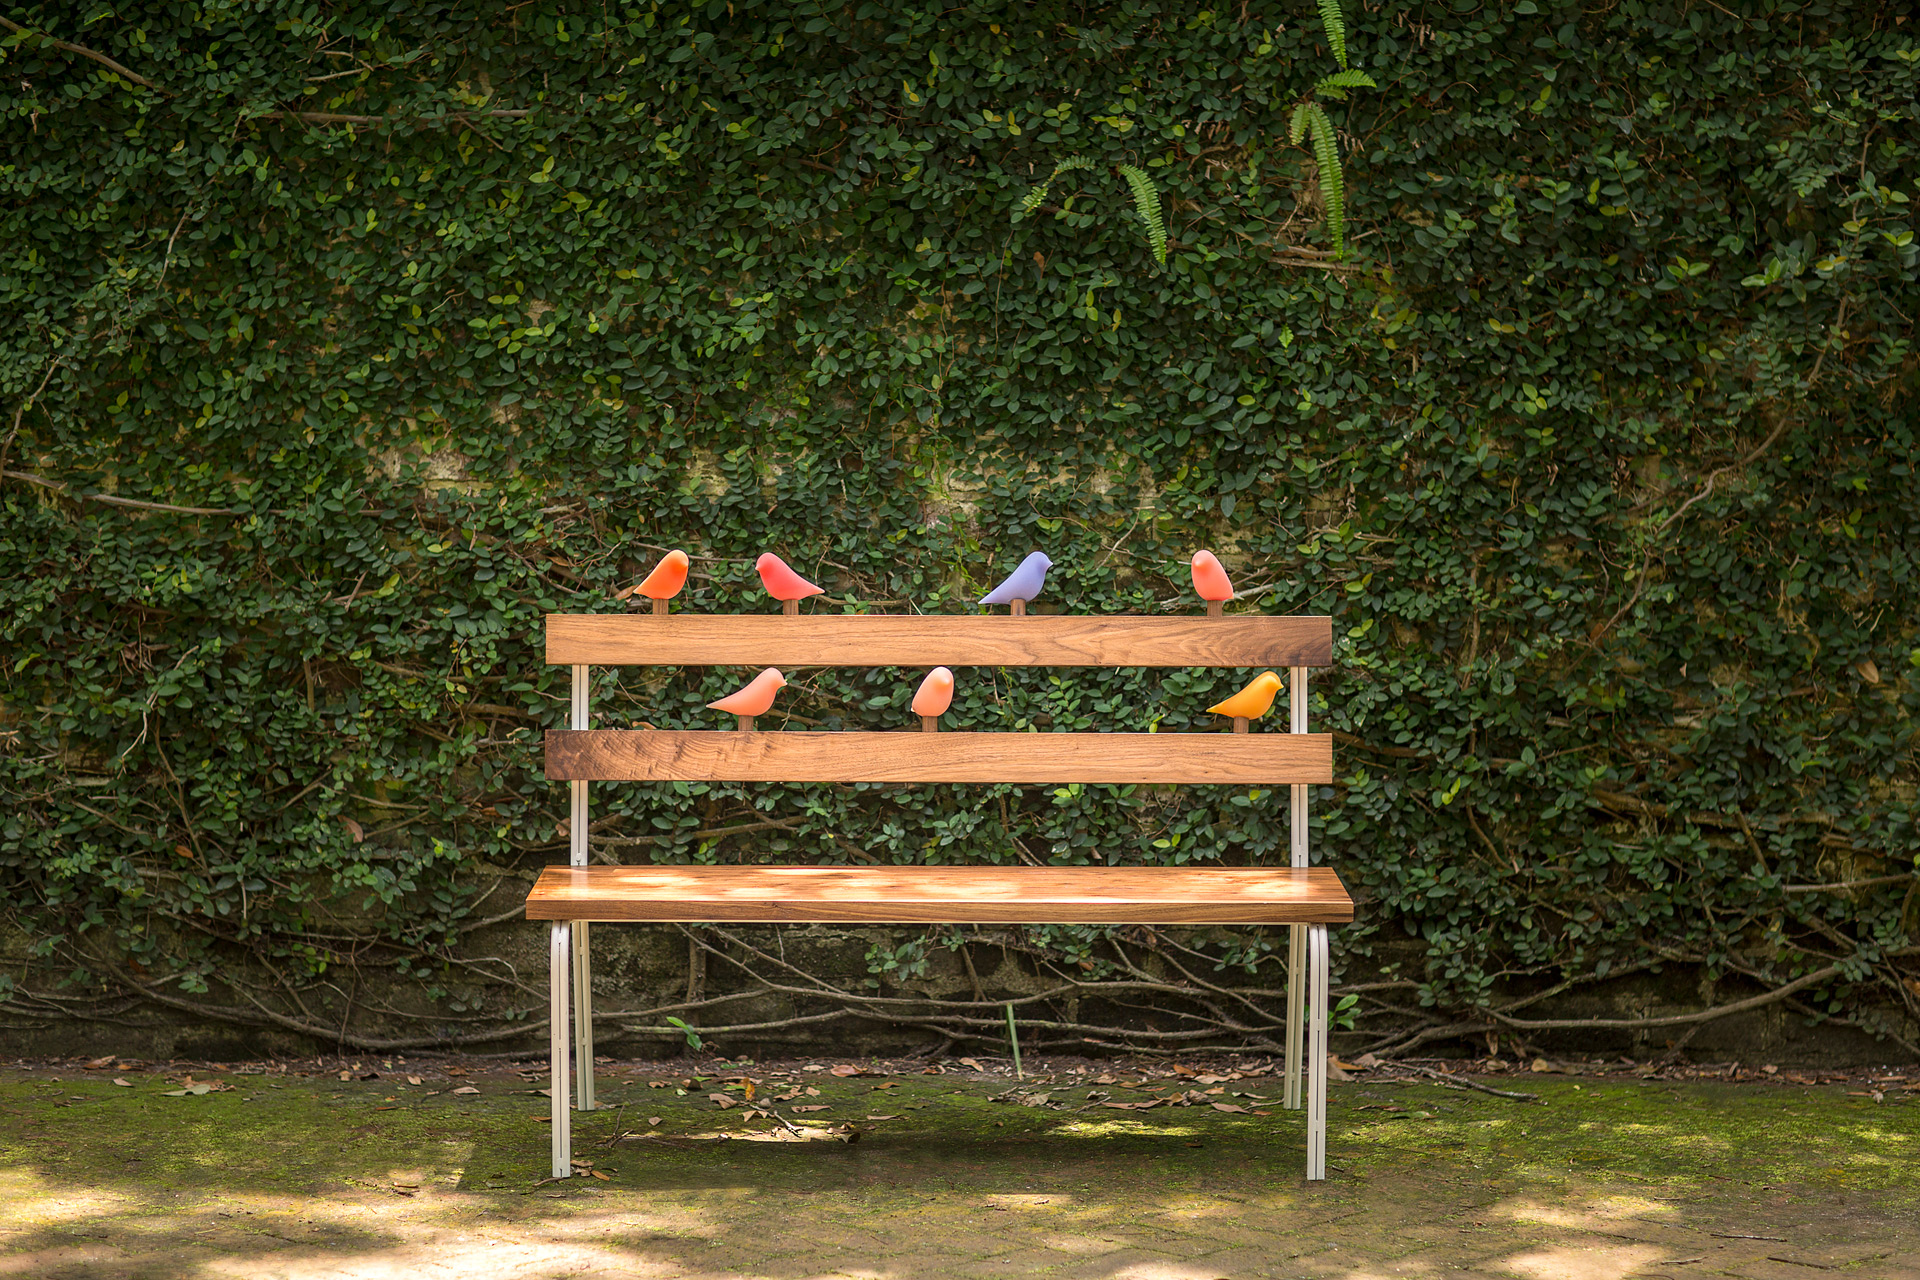 A wooden bench with bird shaped interactive components